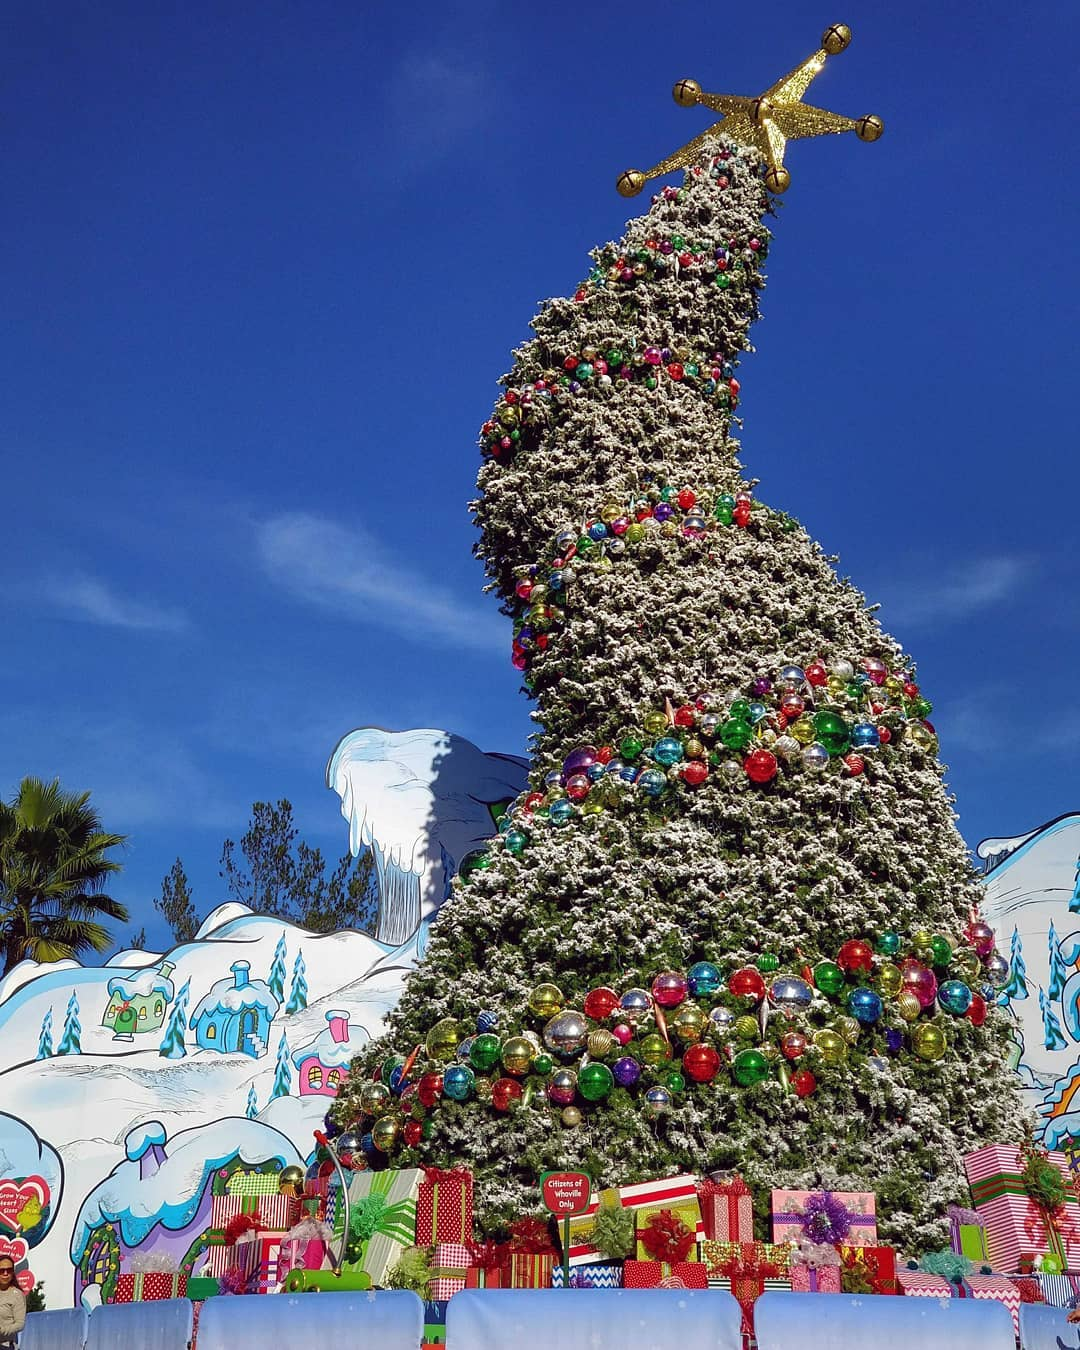 universal studios hollywood visual menureviews by food bloggersinstagrammers - When Does Universal Studios Hollywood Decorate For Christmas